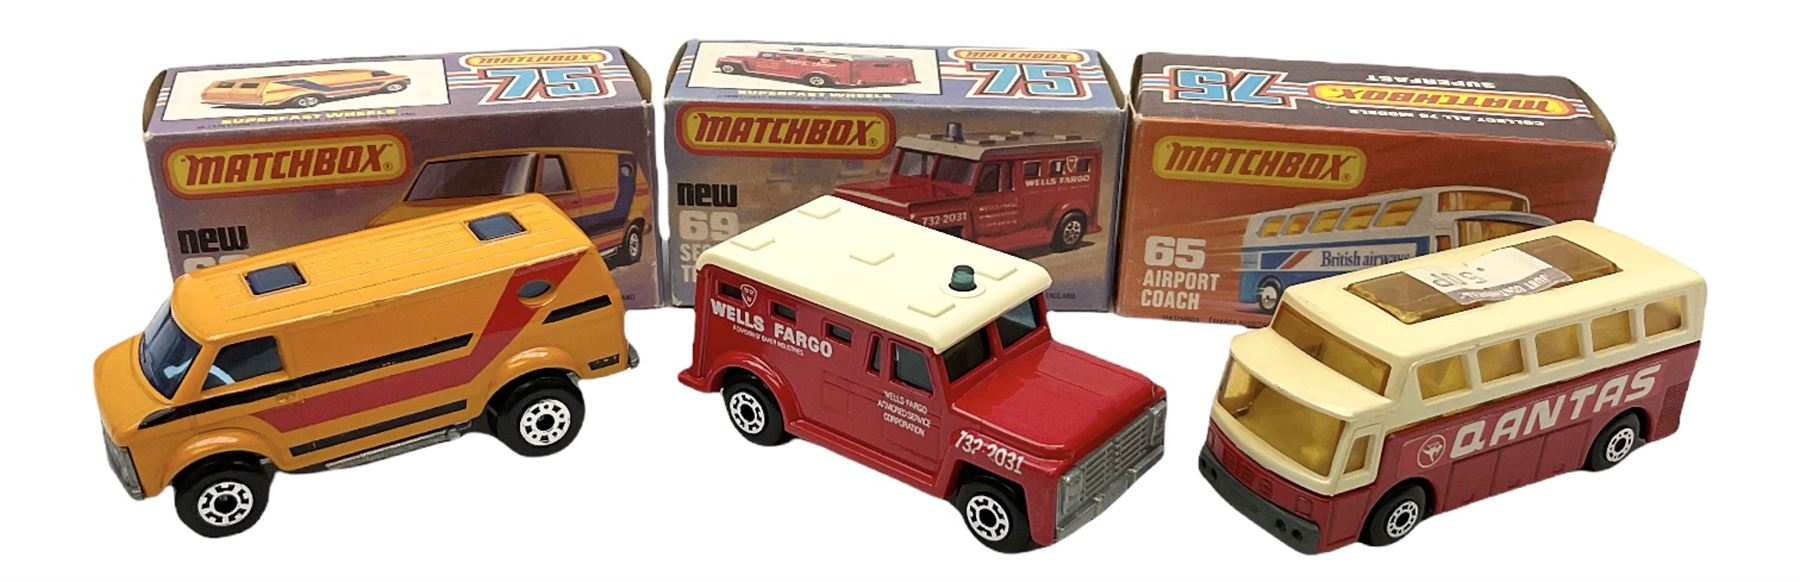 Matchbox/Superfast - nine '1-75' series models comprising 64d Fire Chief car - Image 6 of 8